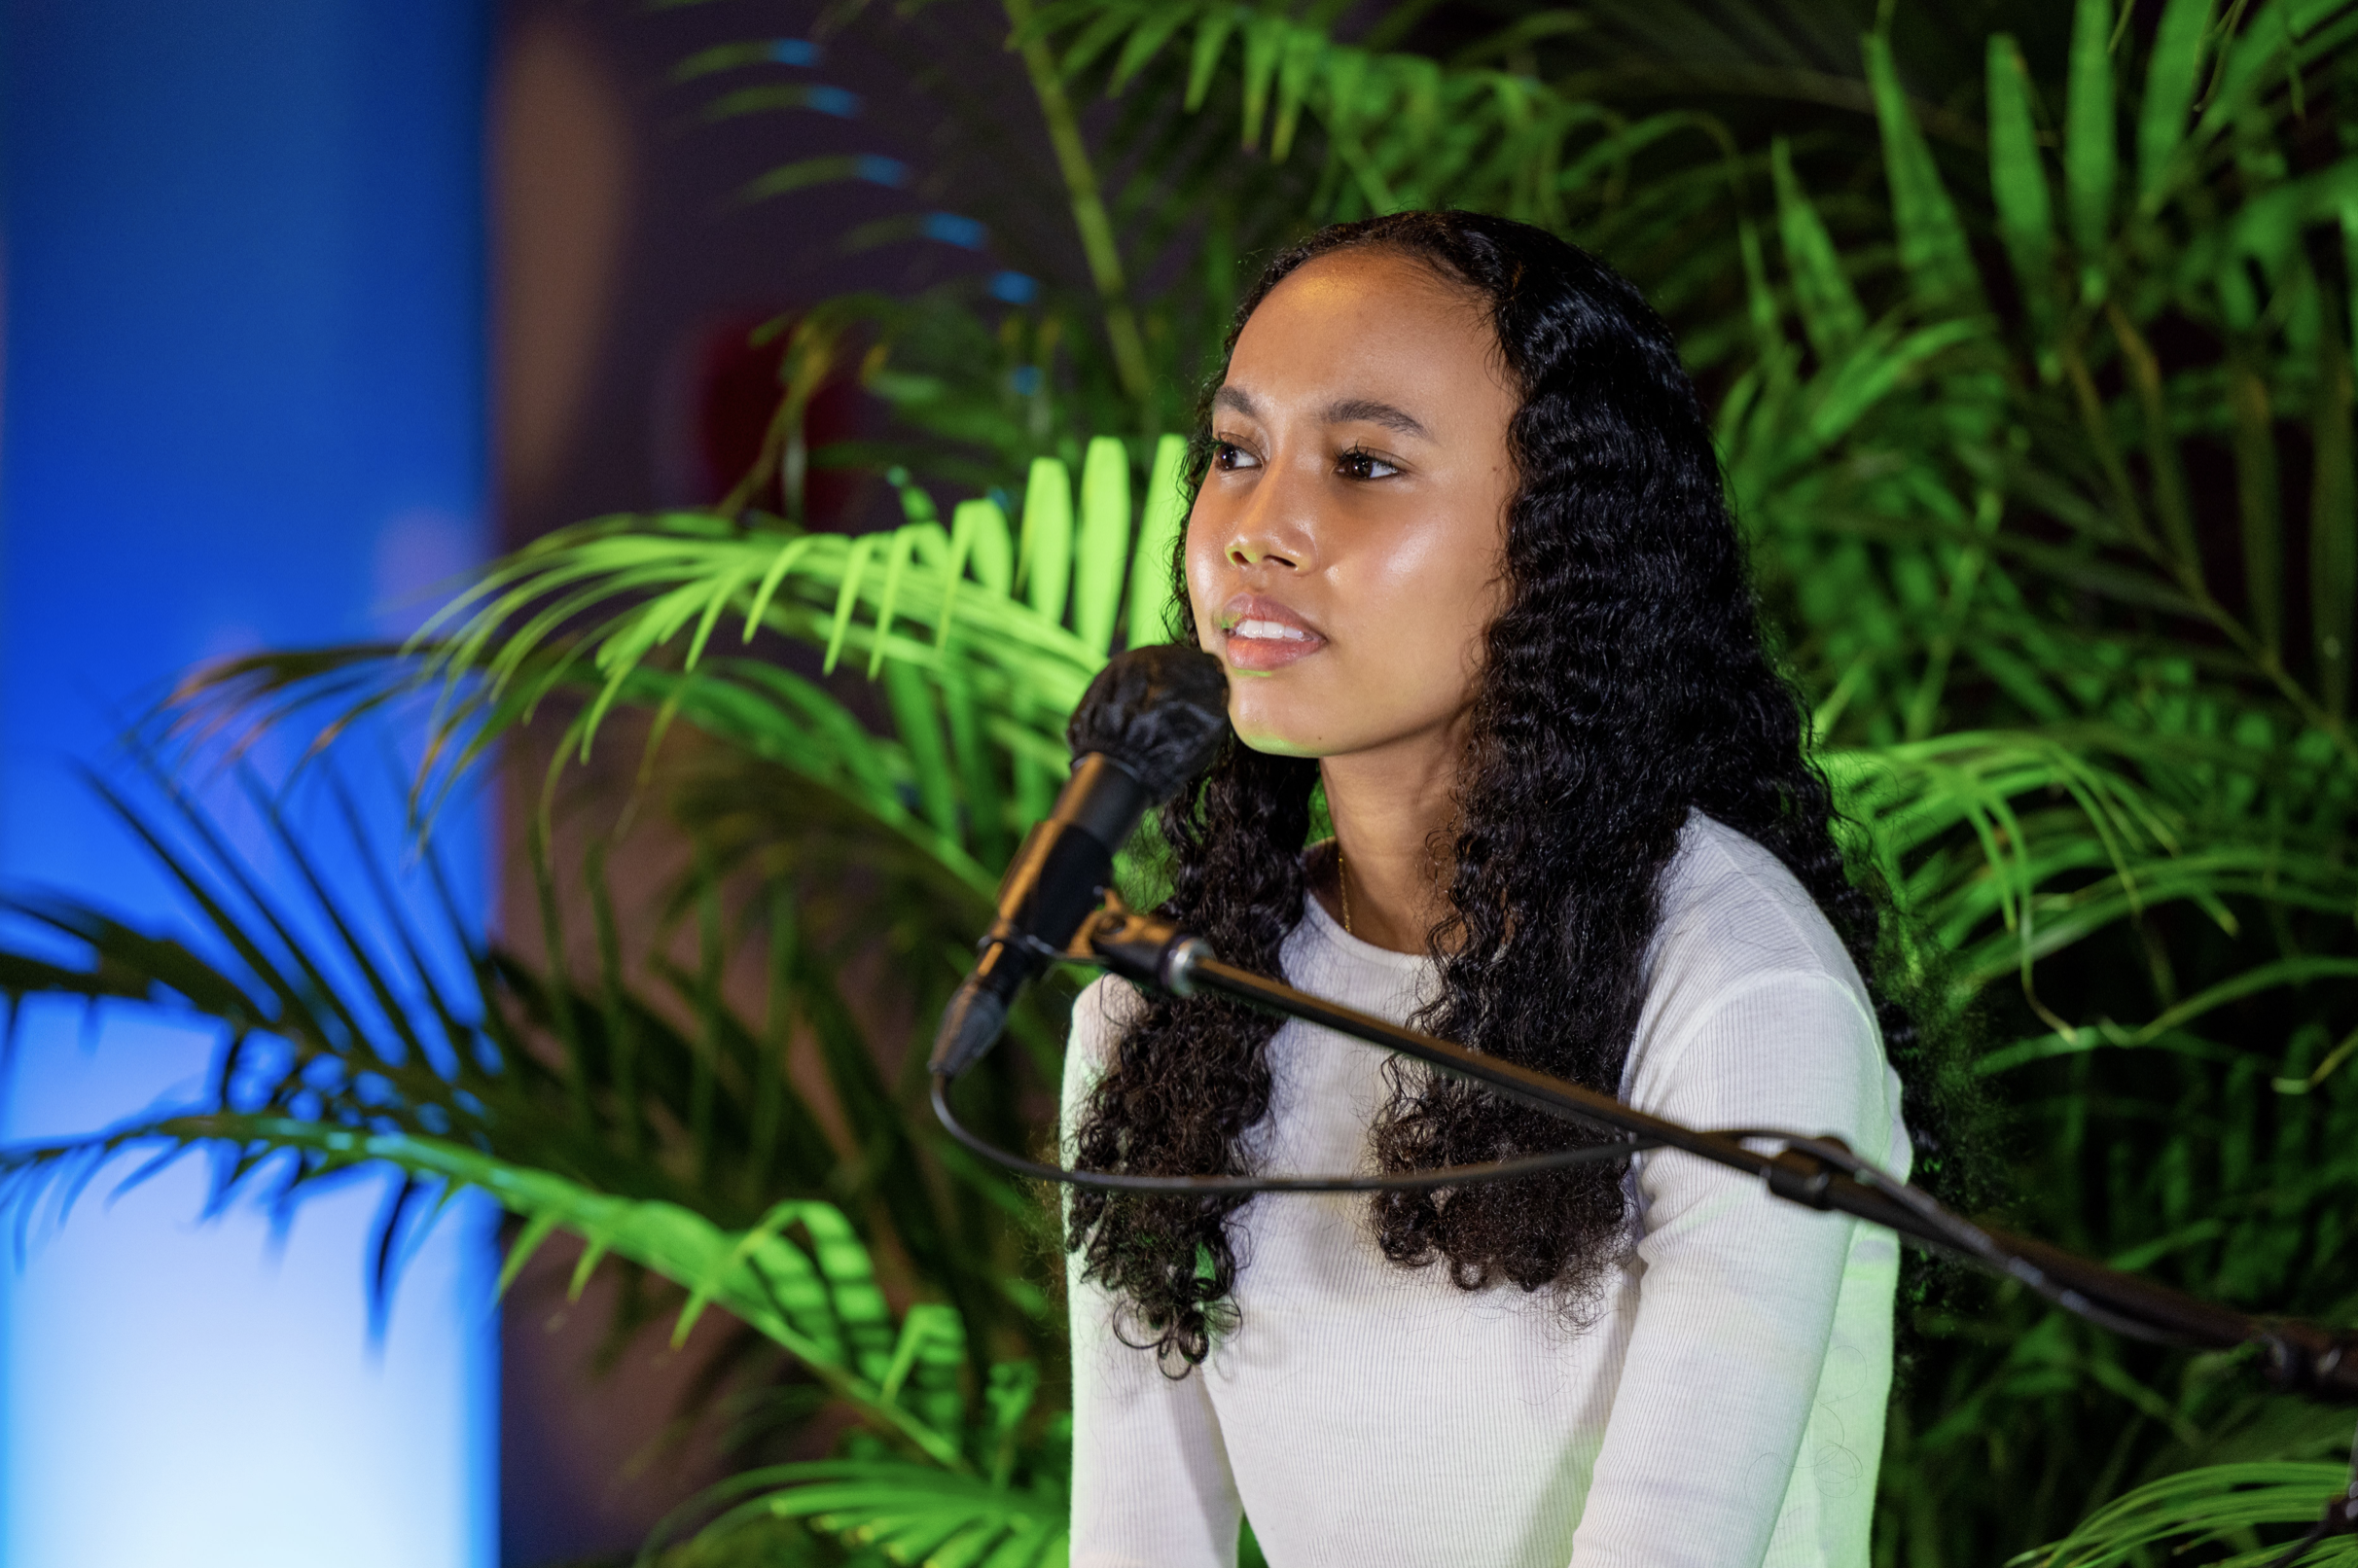 The MACC Announces Selection of Hawai'i's First-Ever Youth Poet Laureate